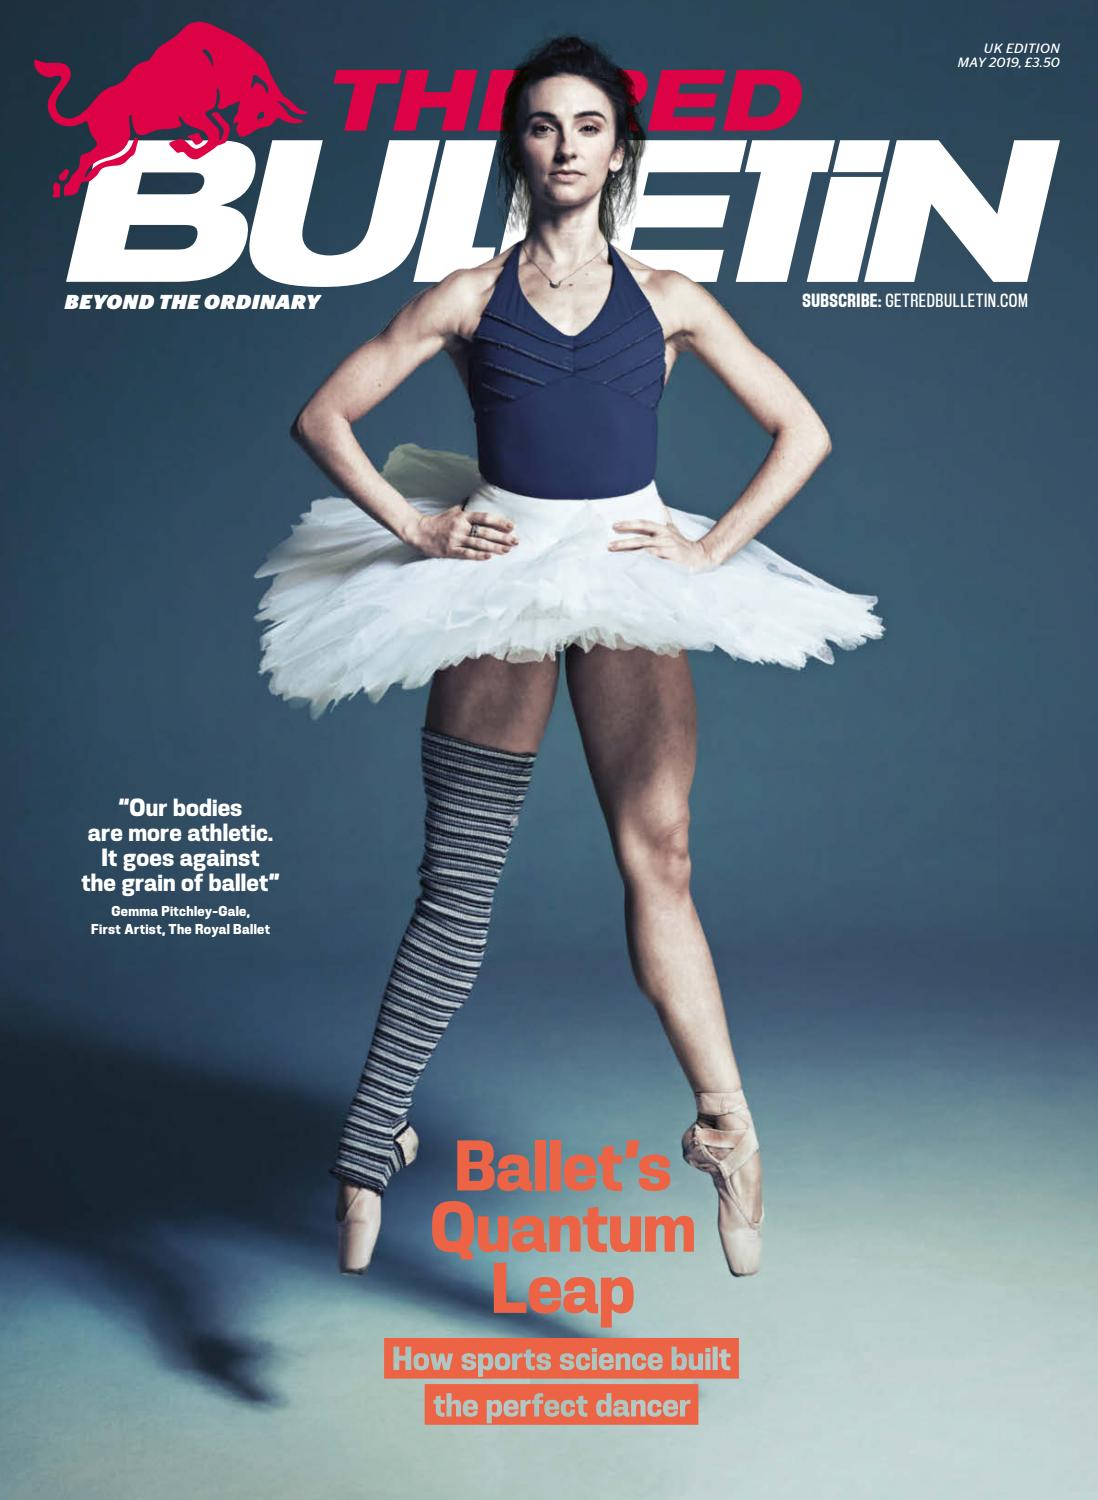 b07569b831 The Red Bulletin UK 05/19 by Red Bull Media House - issuu